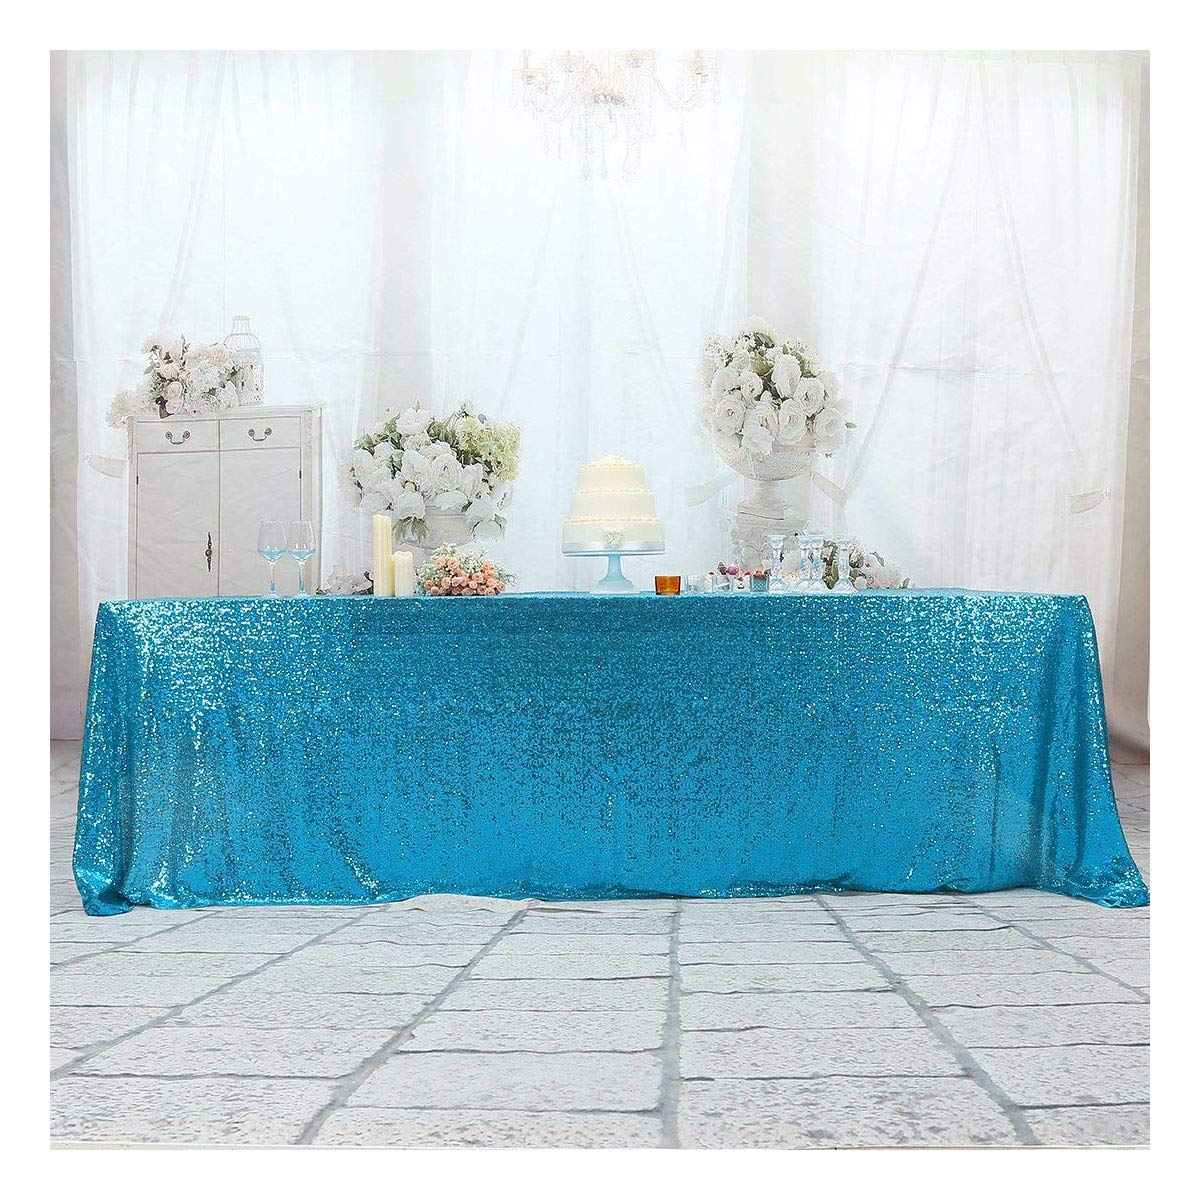 3e Home 50×80'' Rectangle Sequin Tablecloth for Party Cake Dessert Table Exhibition Events, Turquoise